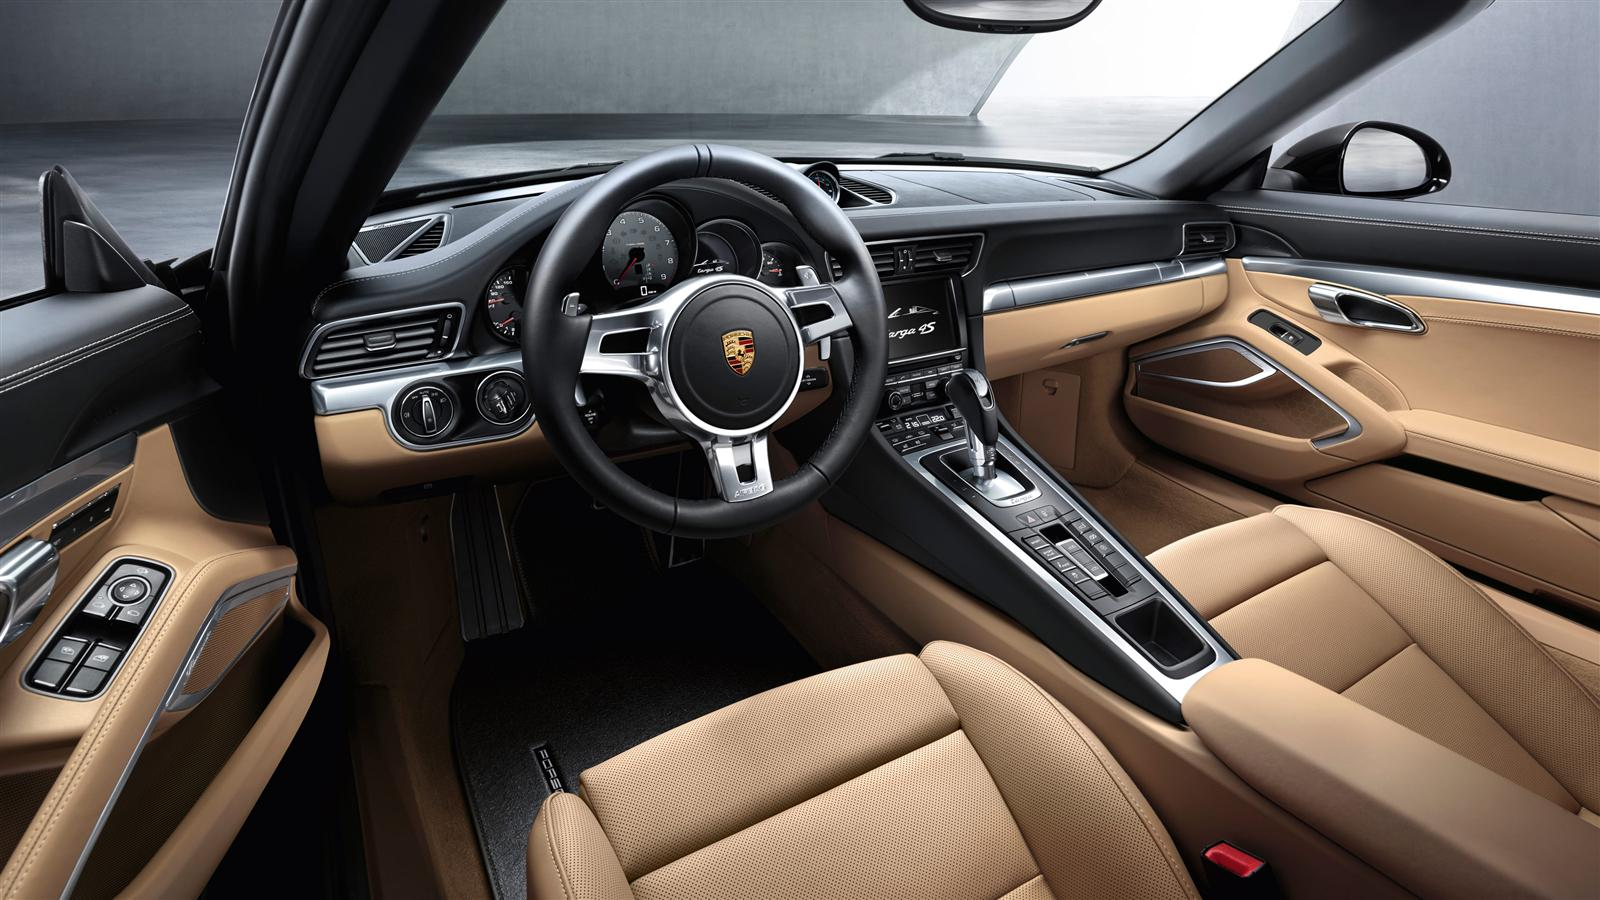 Black Porsche 911 Targa 4s Interior Dashboard Forcegt Com